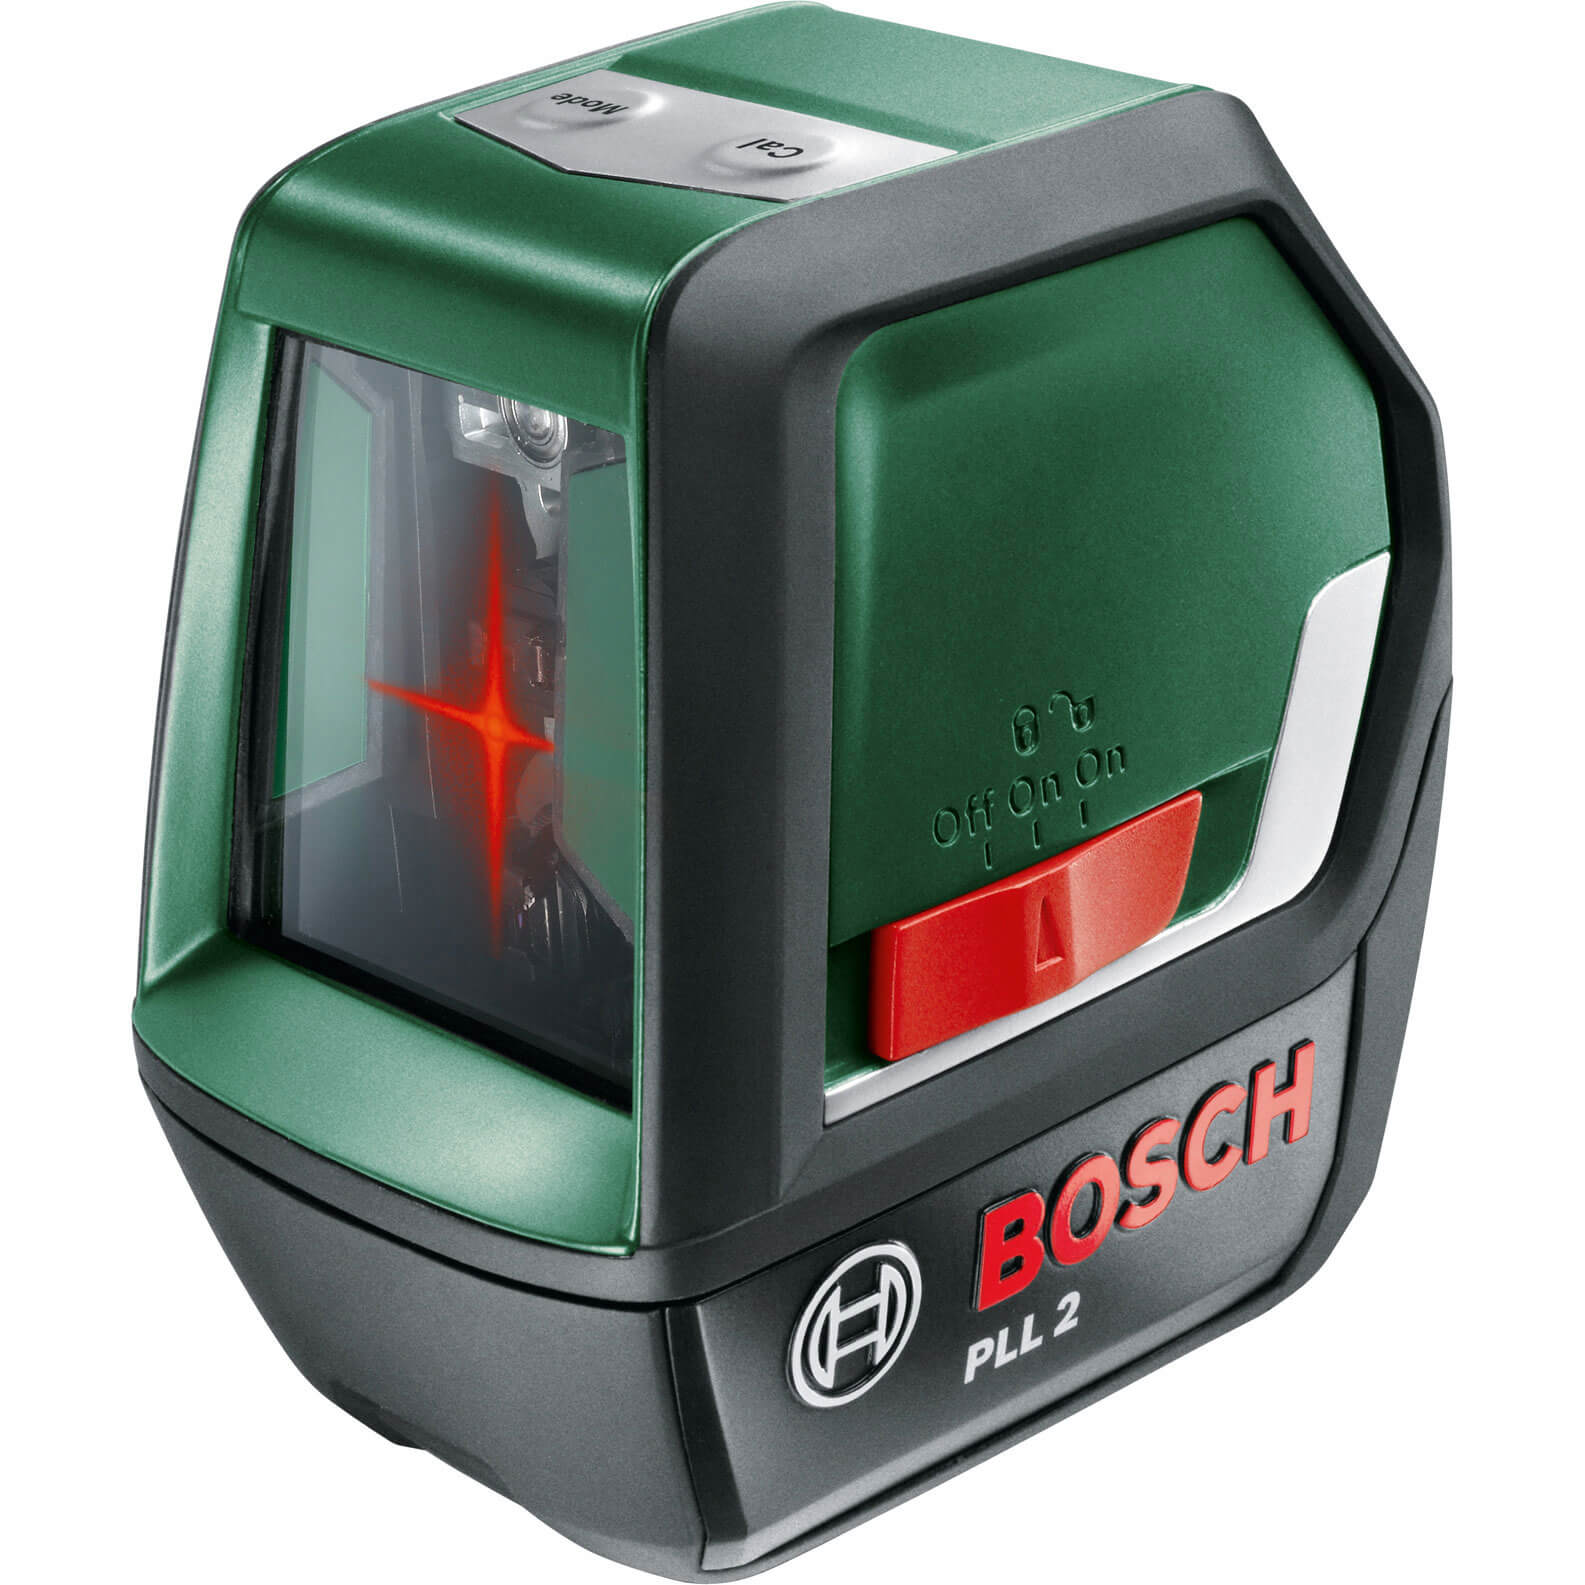 buy cheap bosch laser level compare hand tools prices. Black Bedroom Furniture Sets. Home Design Ideas